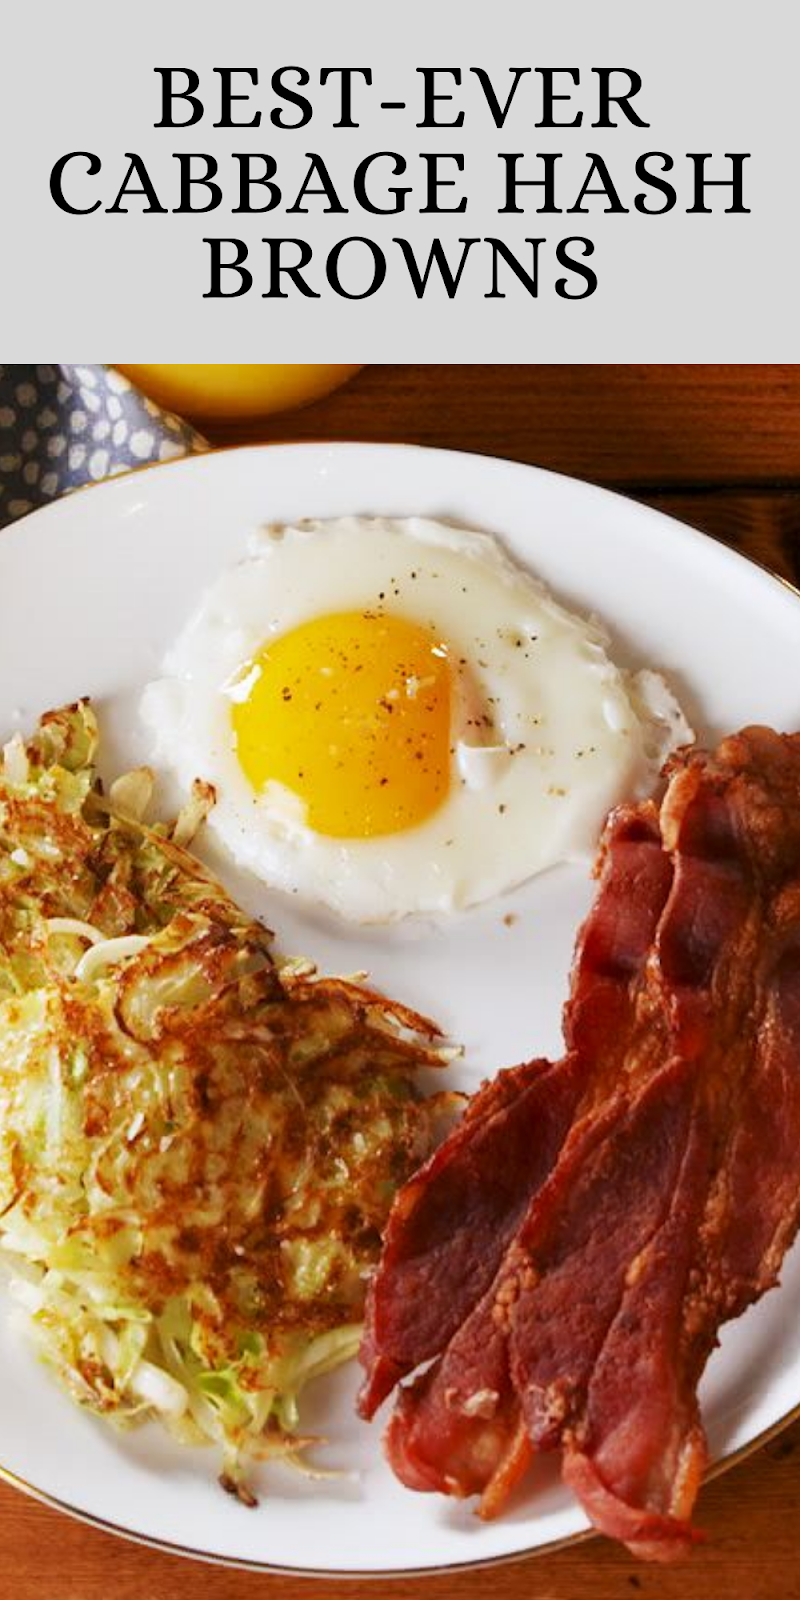 Best-Ever Cabbage Hash Browns